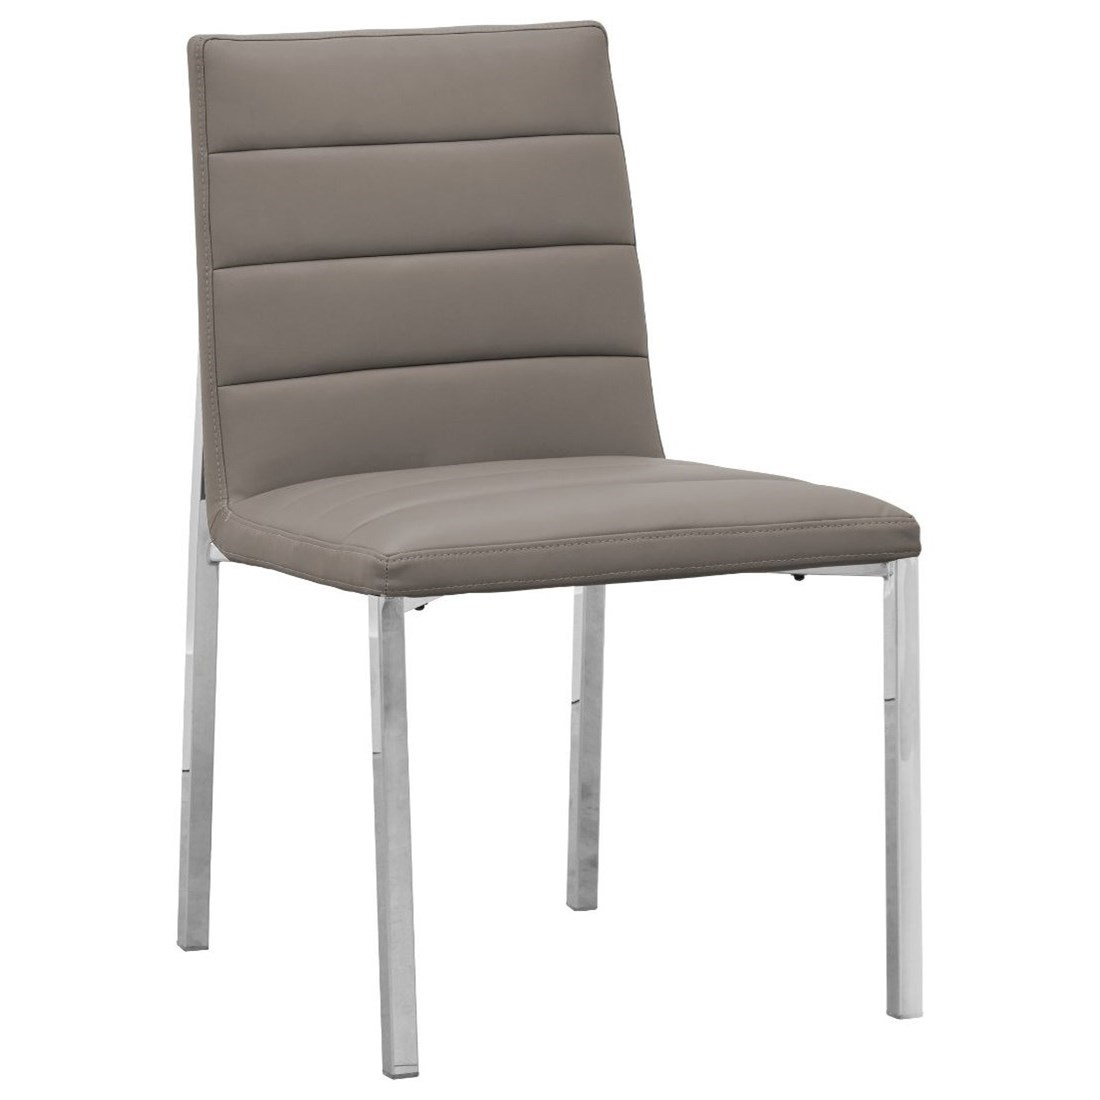 Metal Back Chair in Taupe